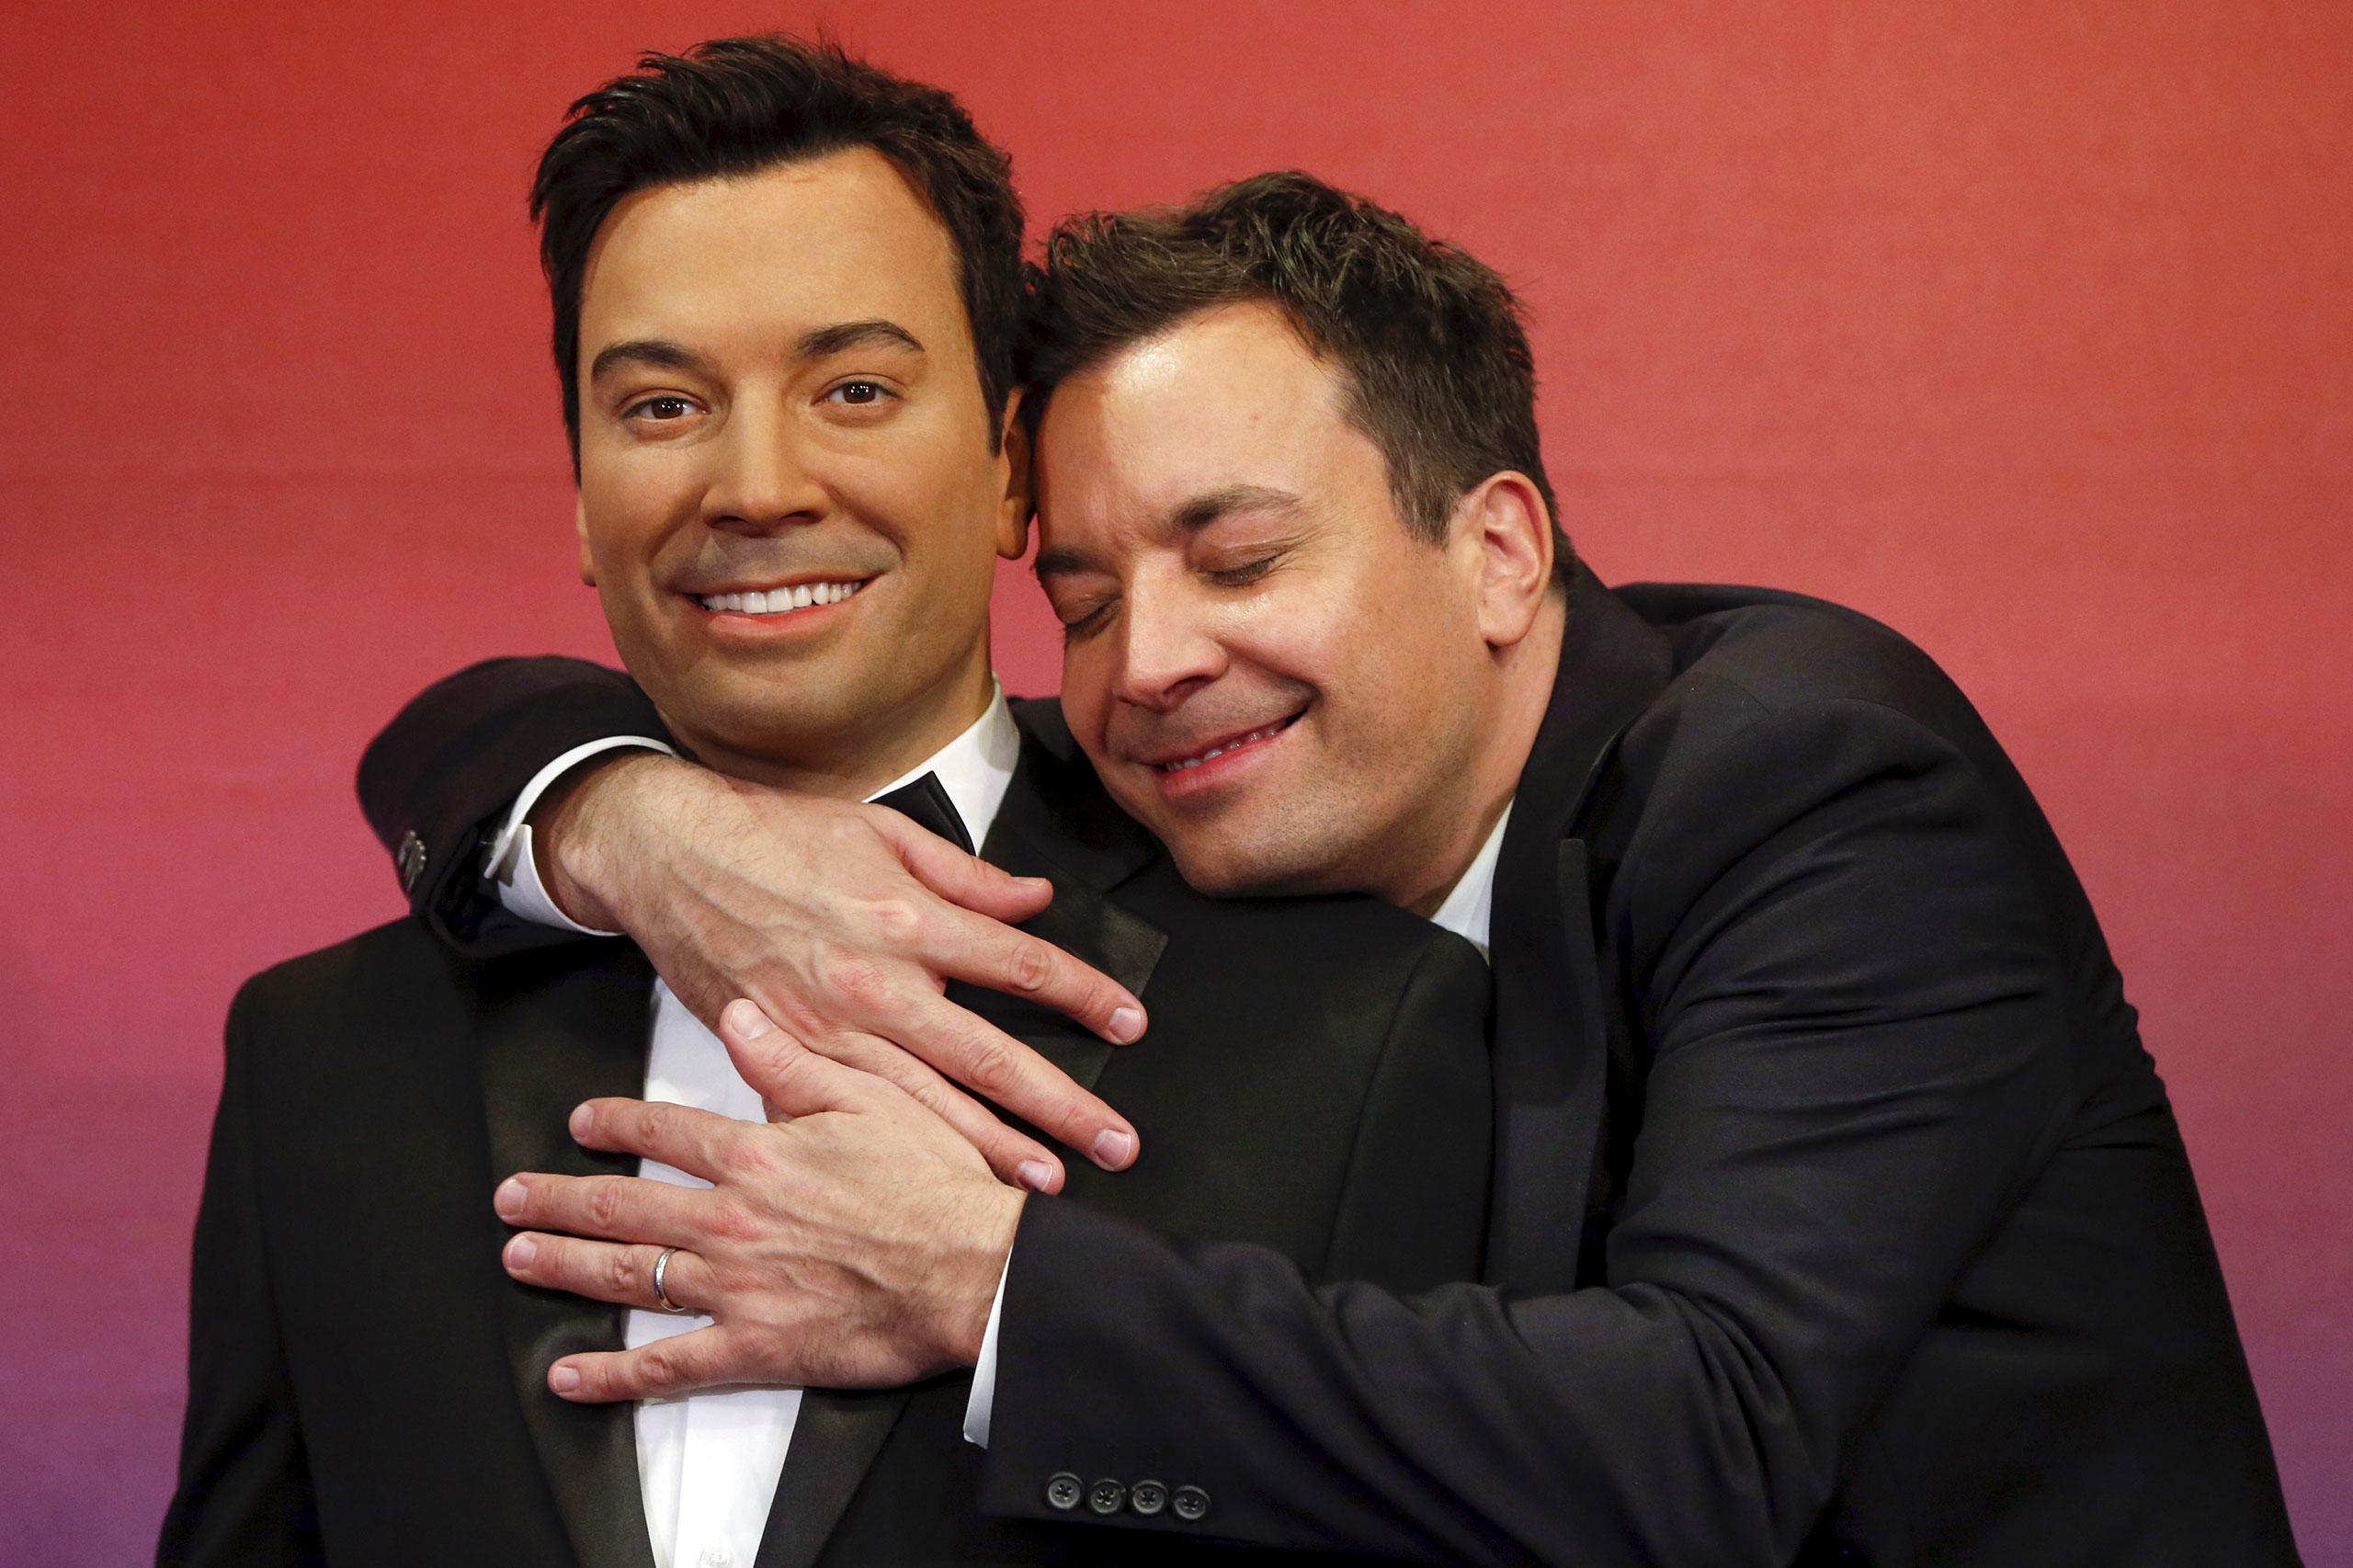 Jimmy Fallon, right, poses with his wax figure at Madame Tussauds in New York on March 27, 2015.